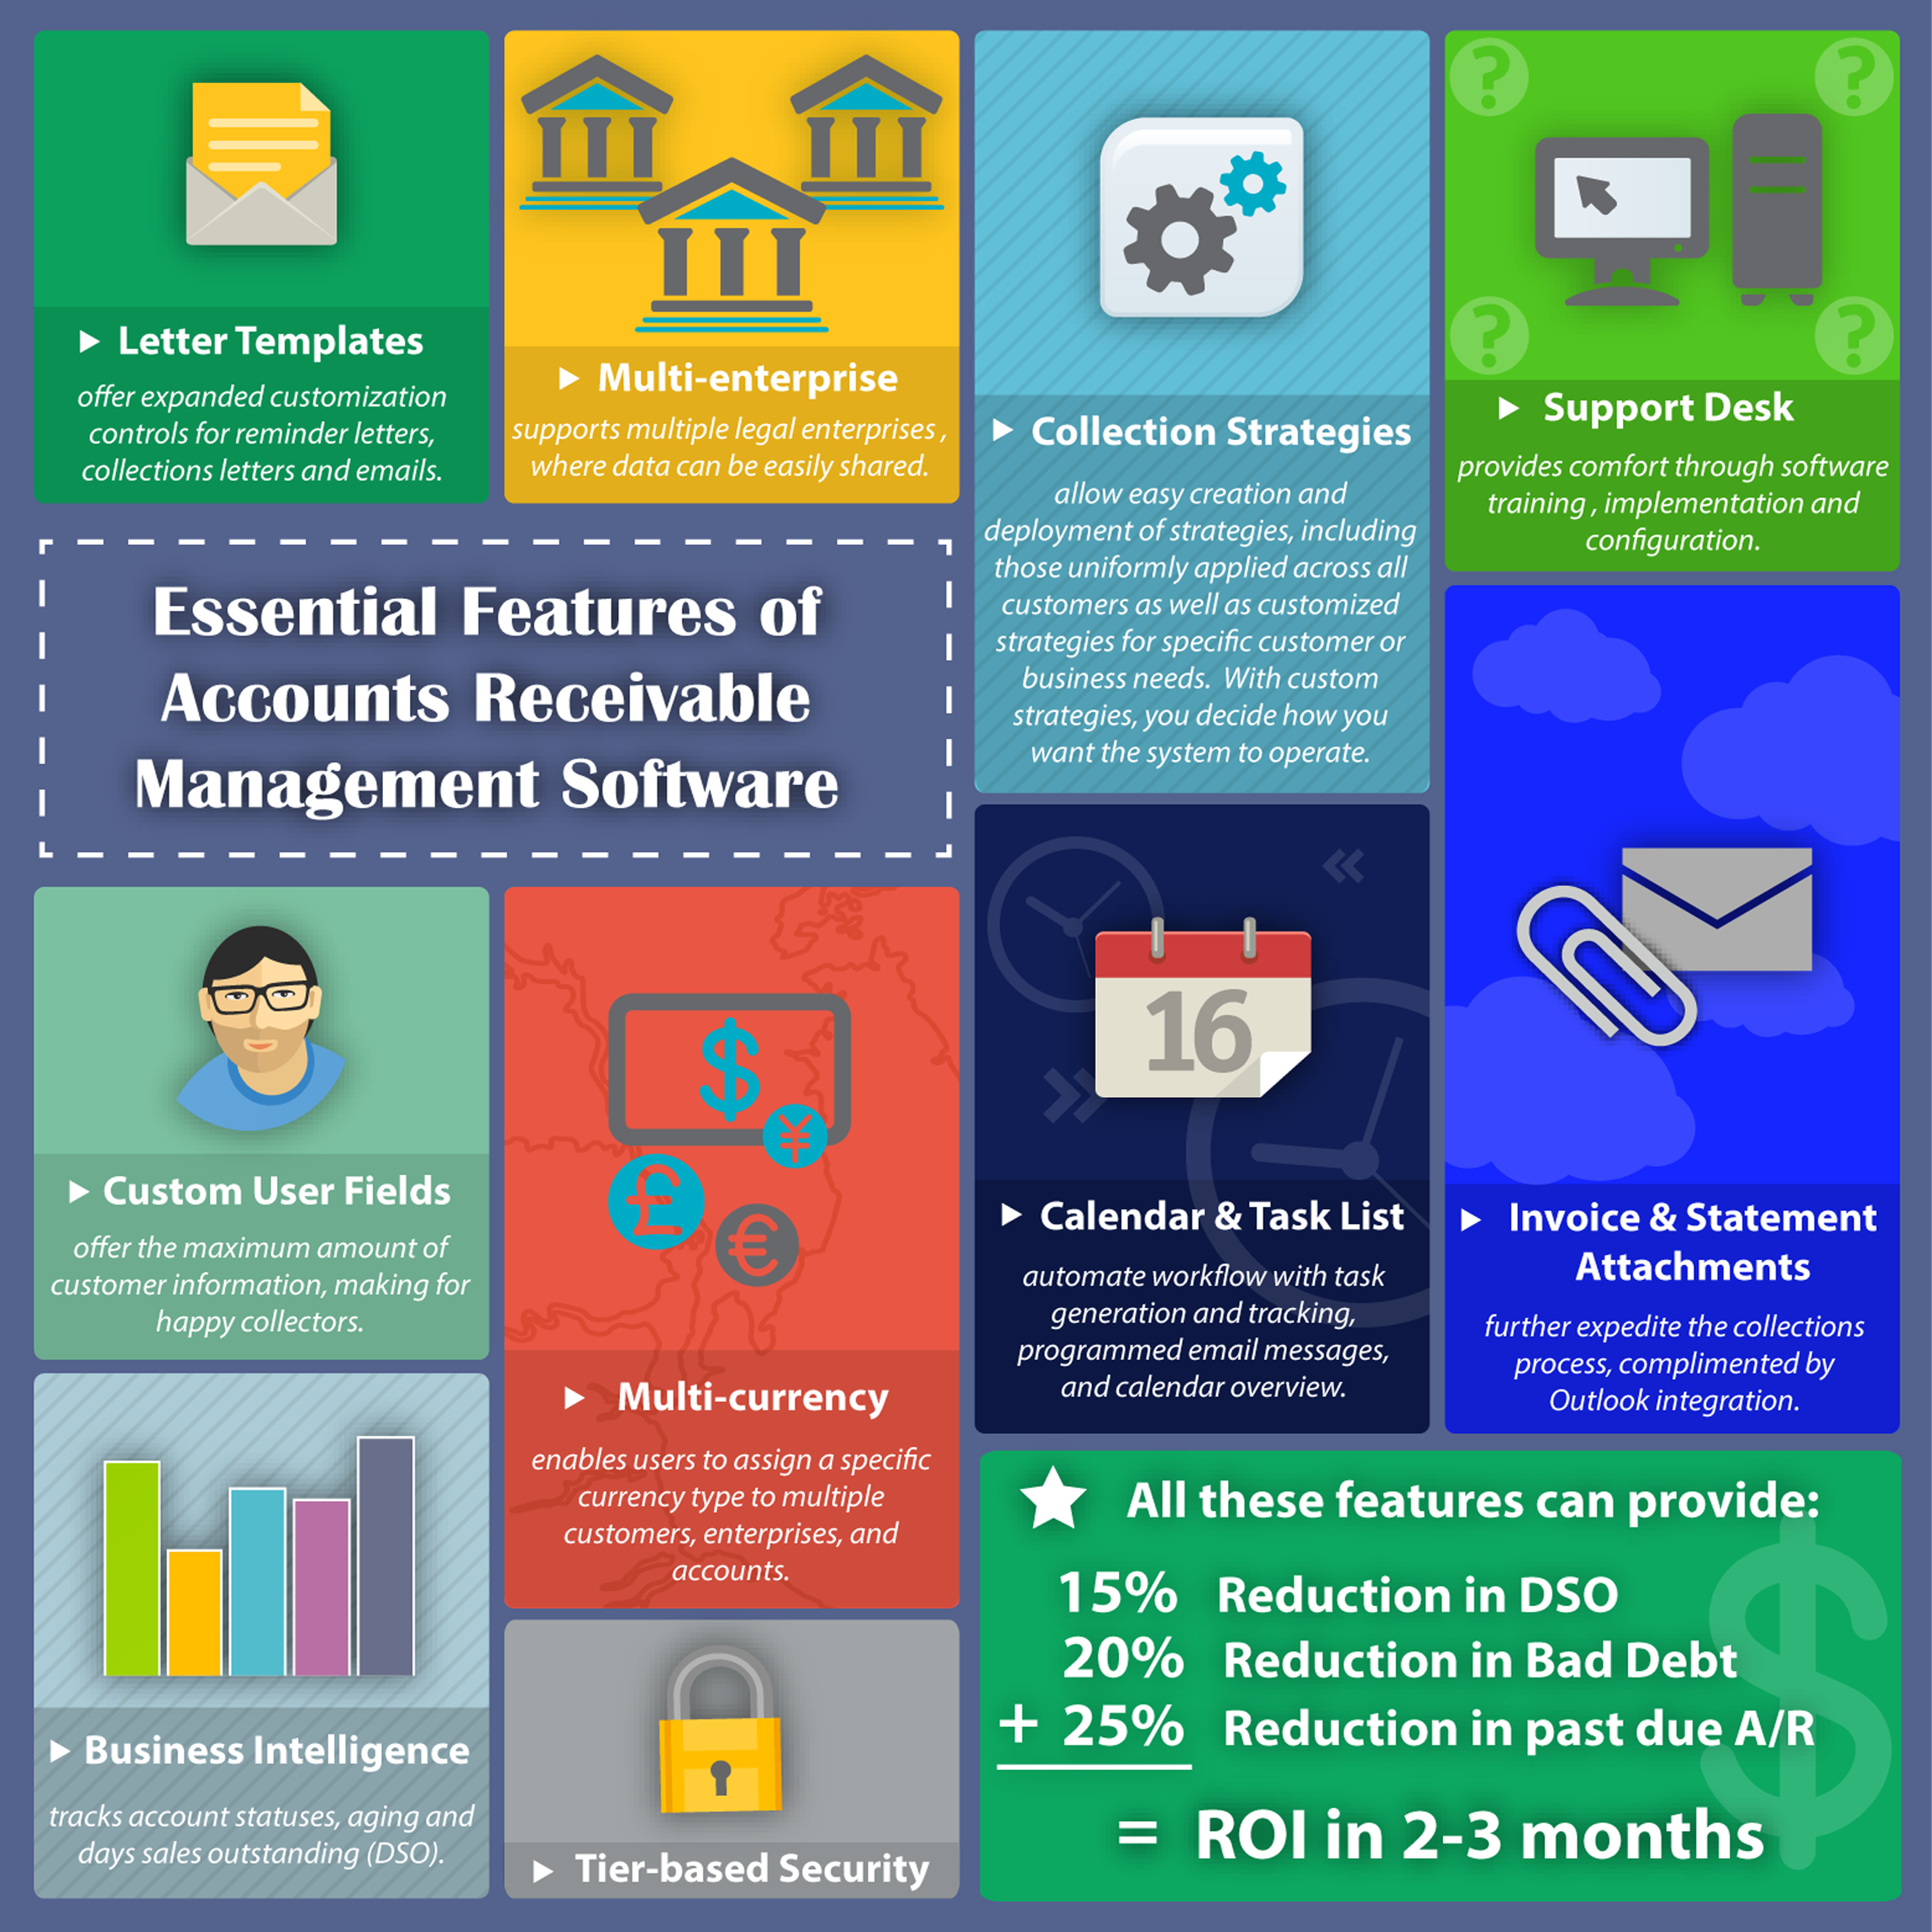 Essential Features of Accounts Receivable Management Software